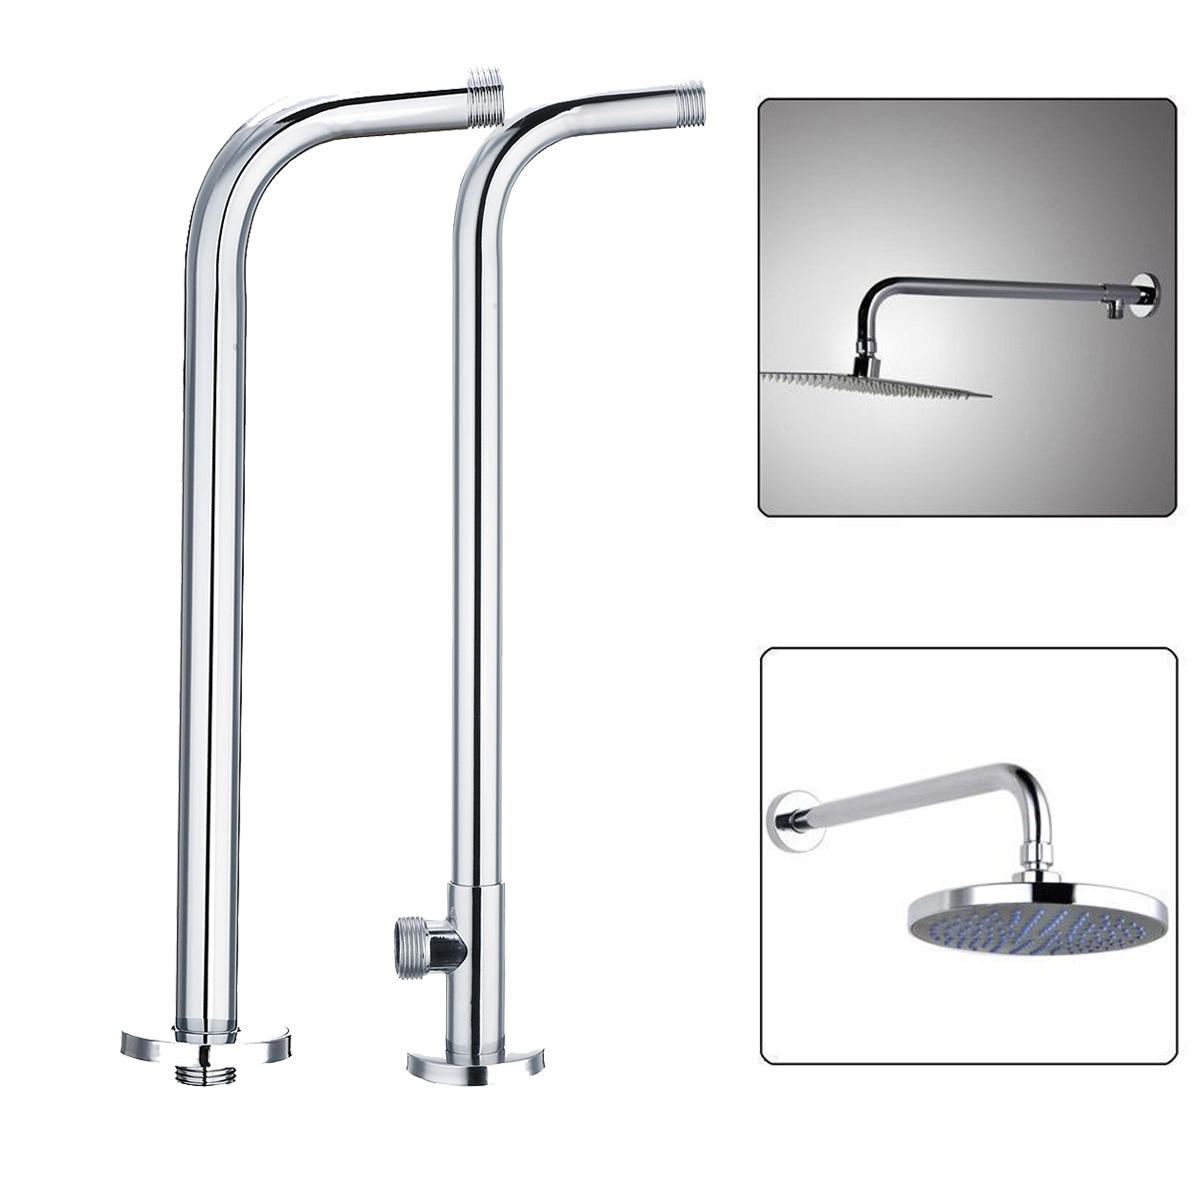 stainless steel shower extension arm home bathroom wall mounted rh banggood com